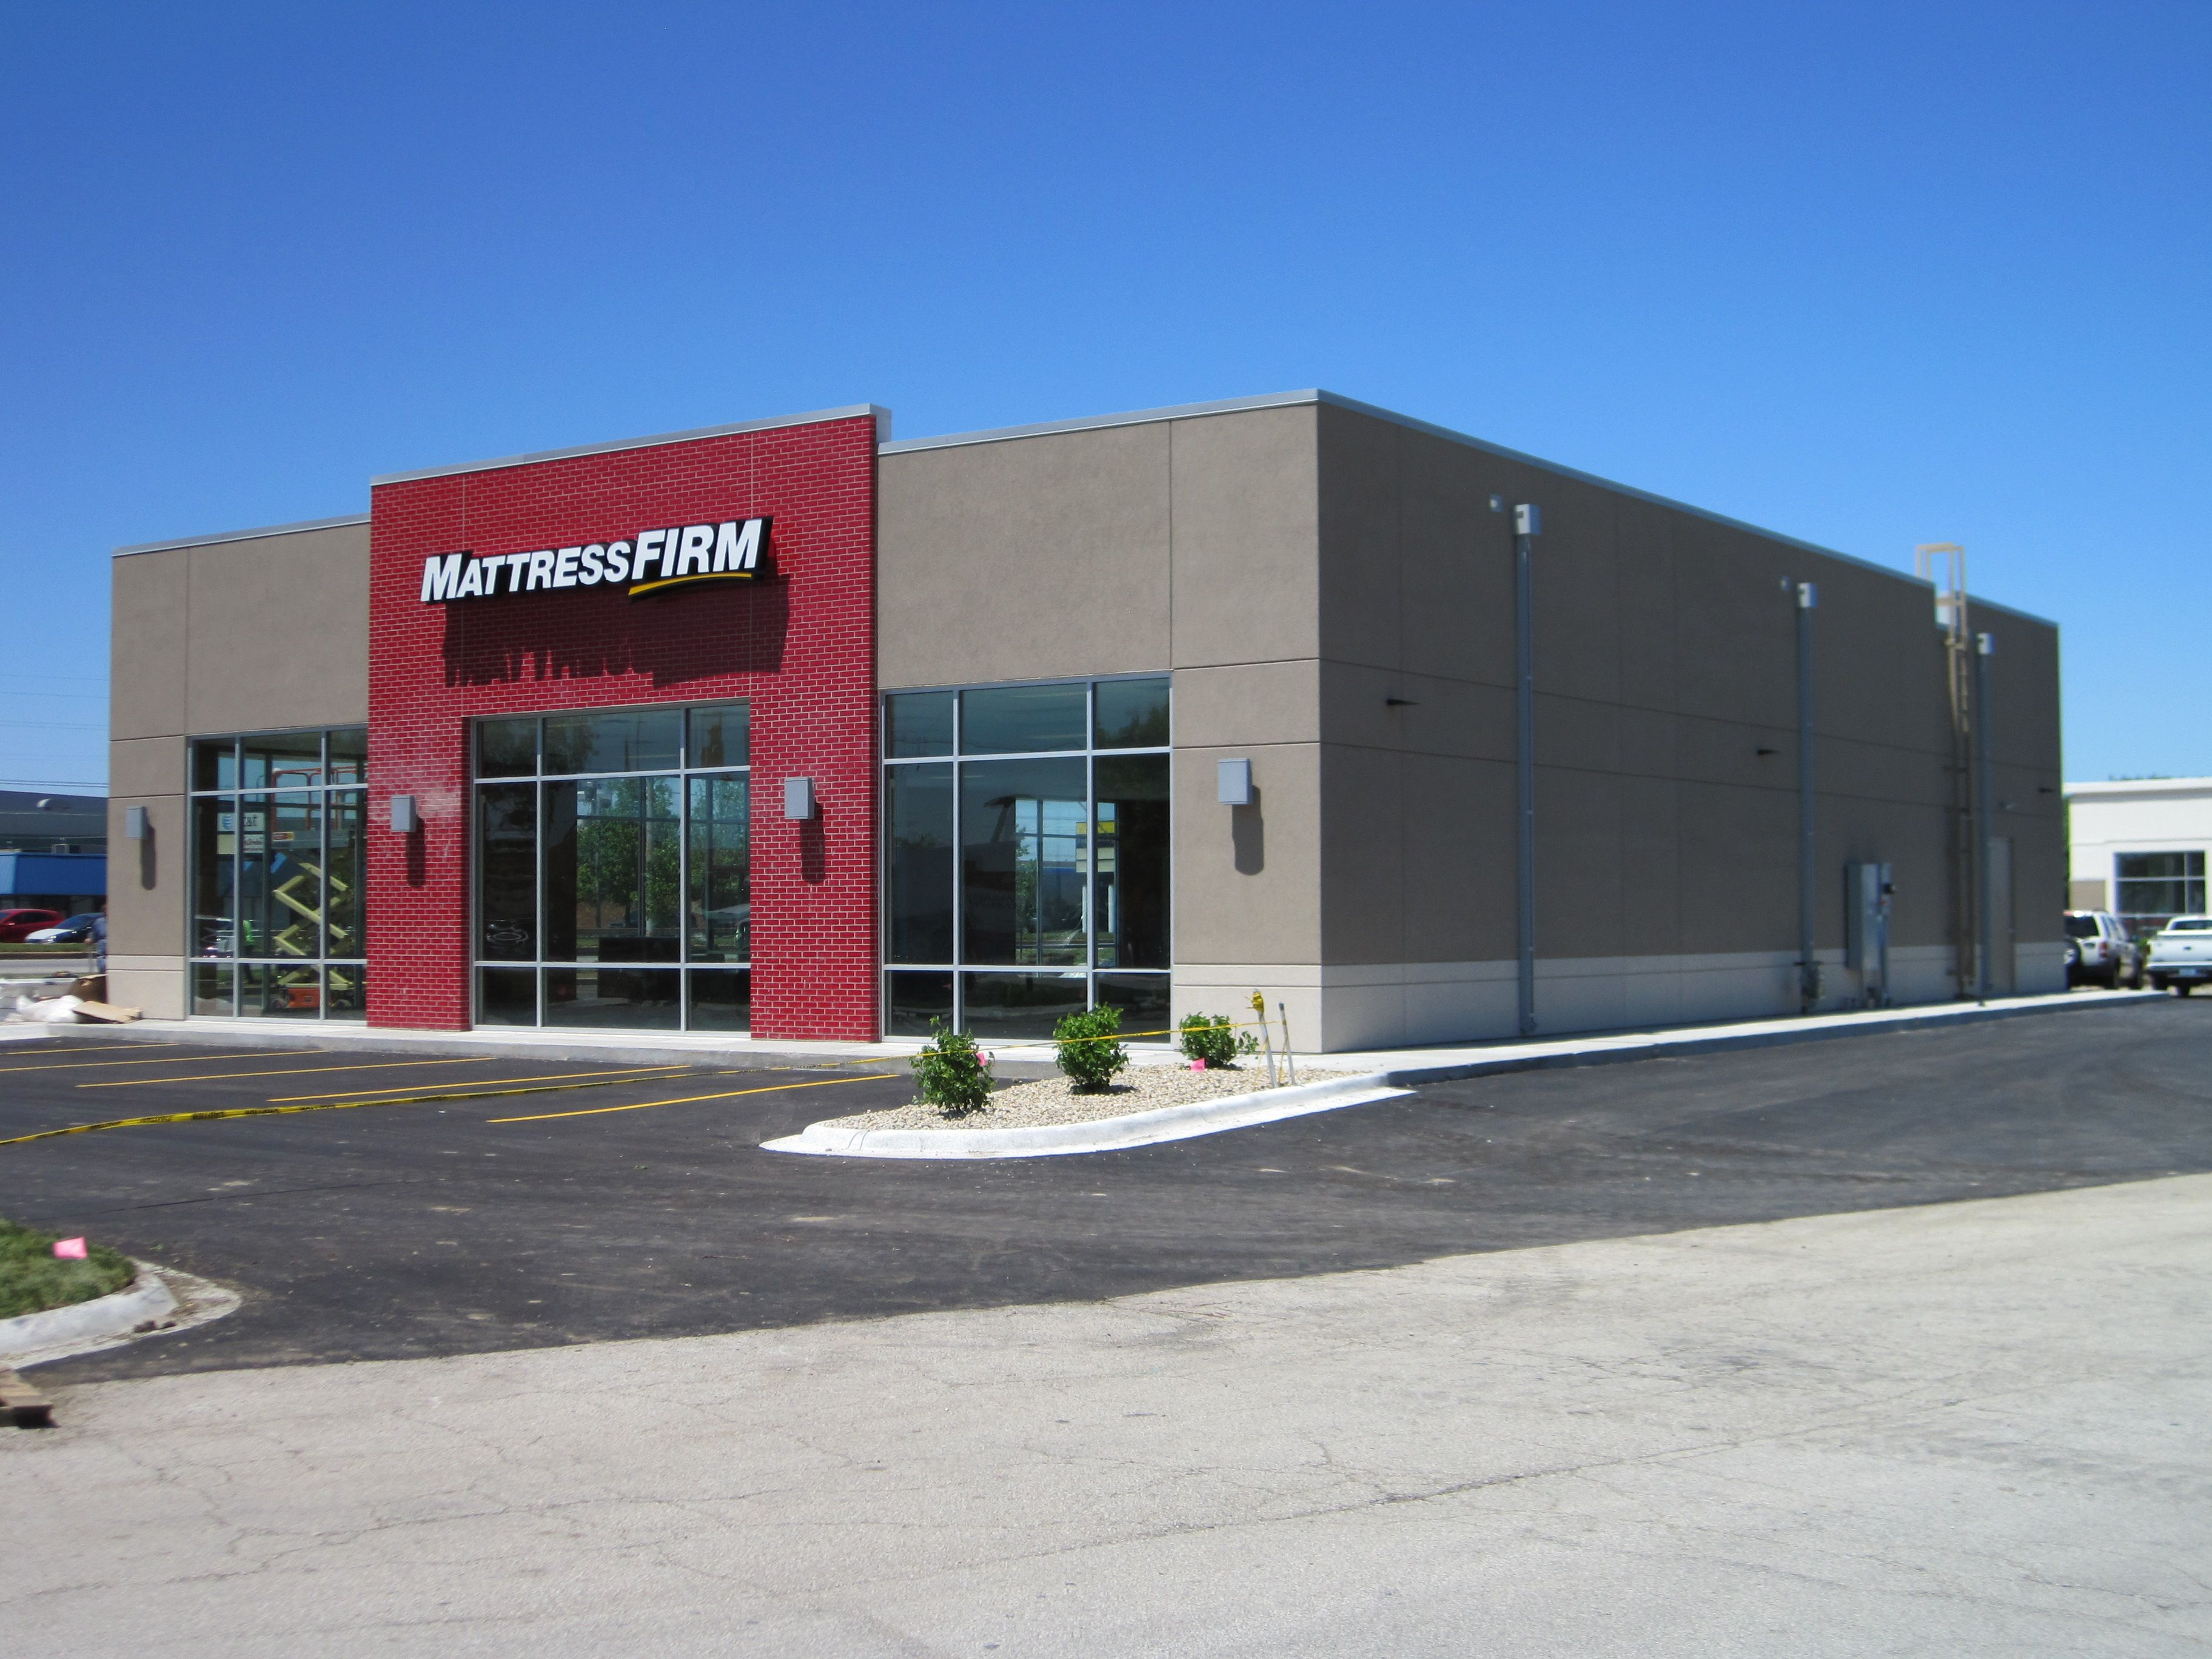 chipotle mattress firm retail center google search trendy